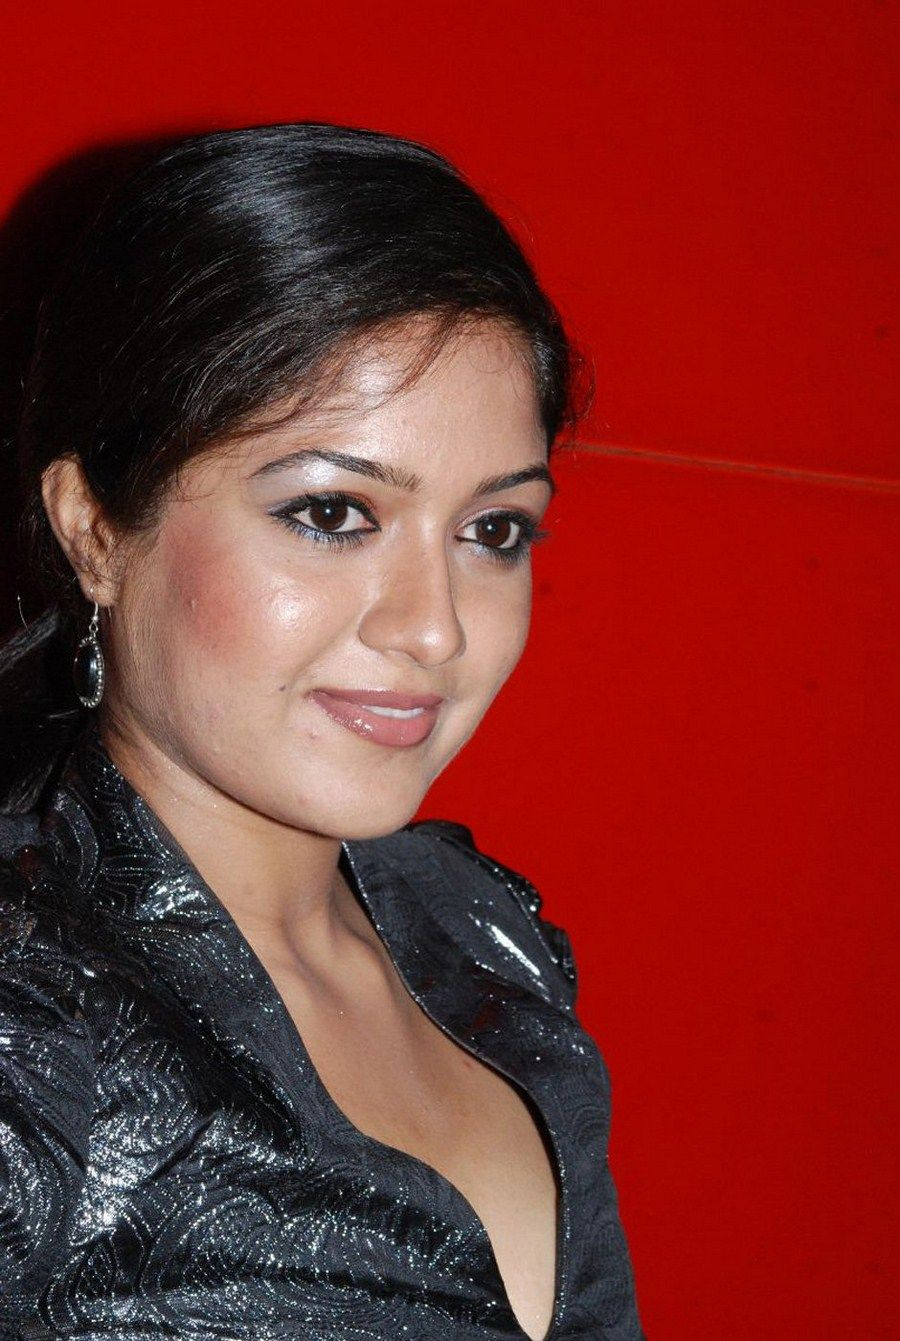 meghna-sundar-hot-photos-4 - high quality photo gallery,actress